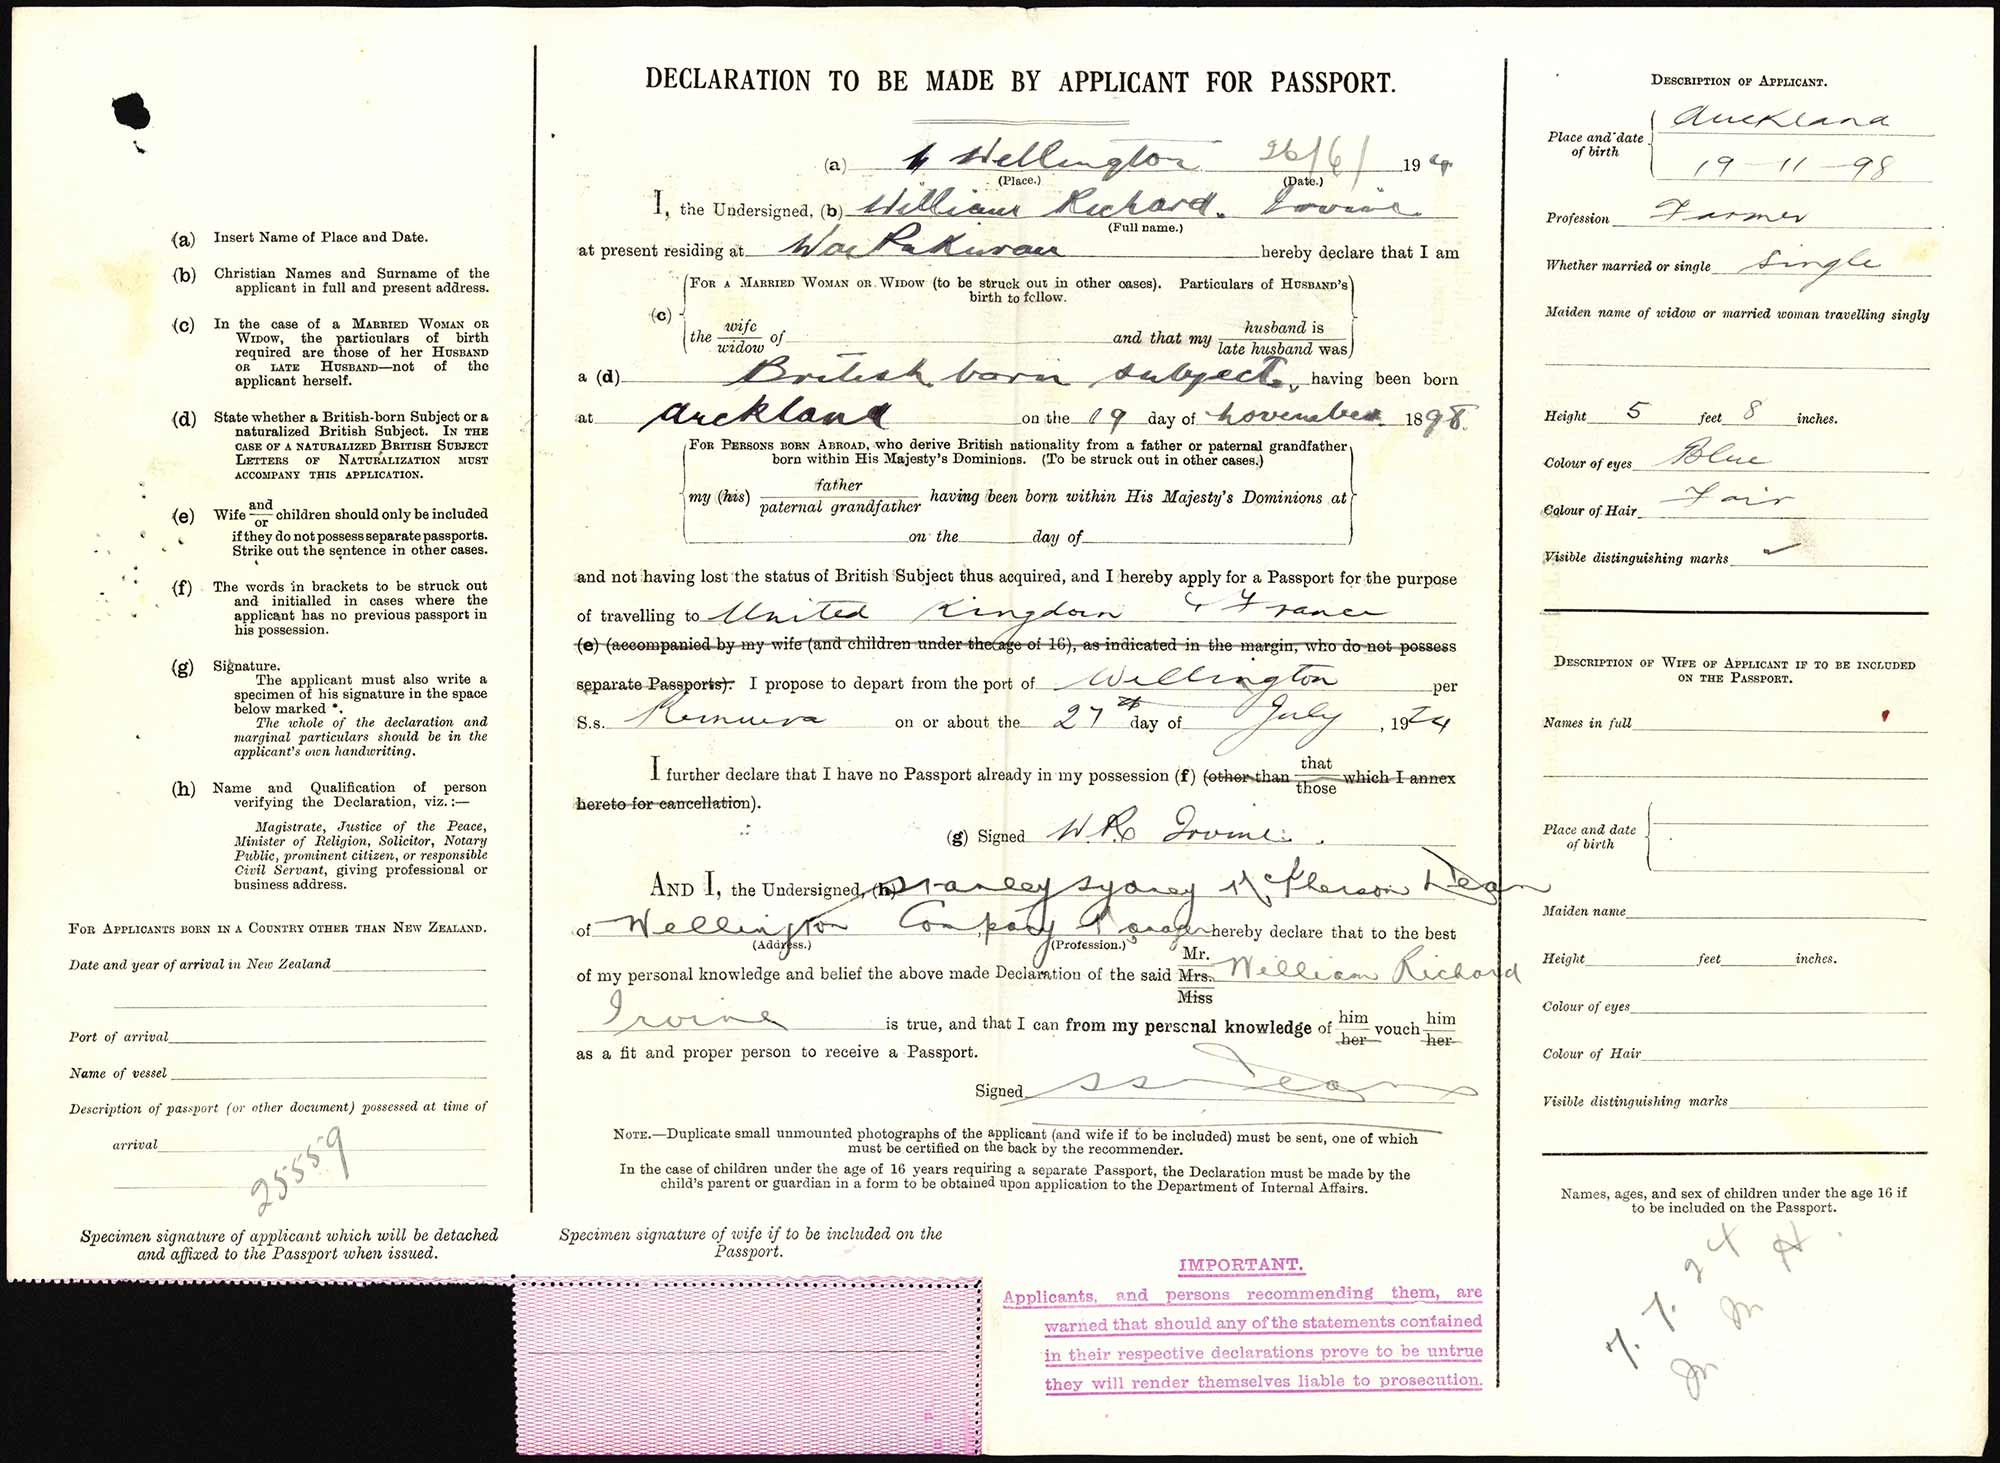 William Richard Irvine passport application